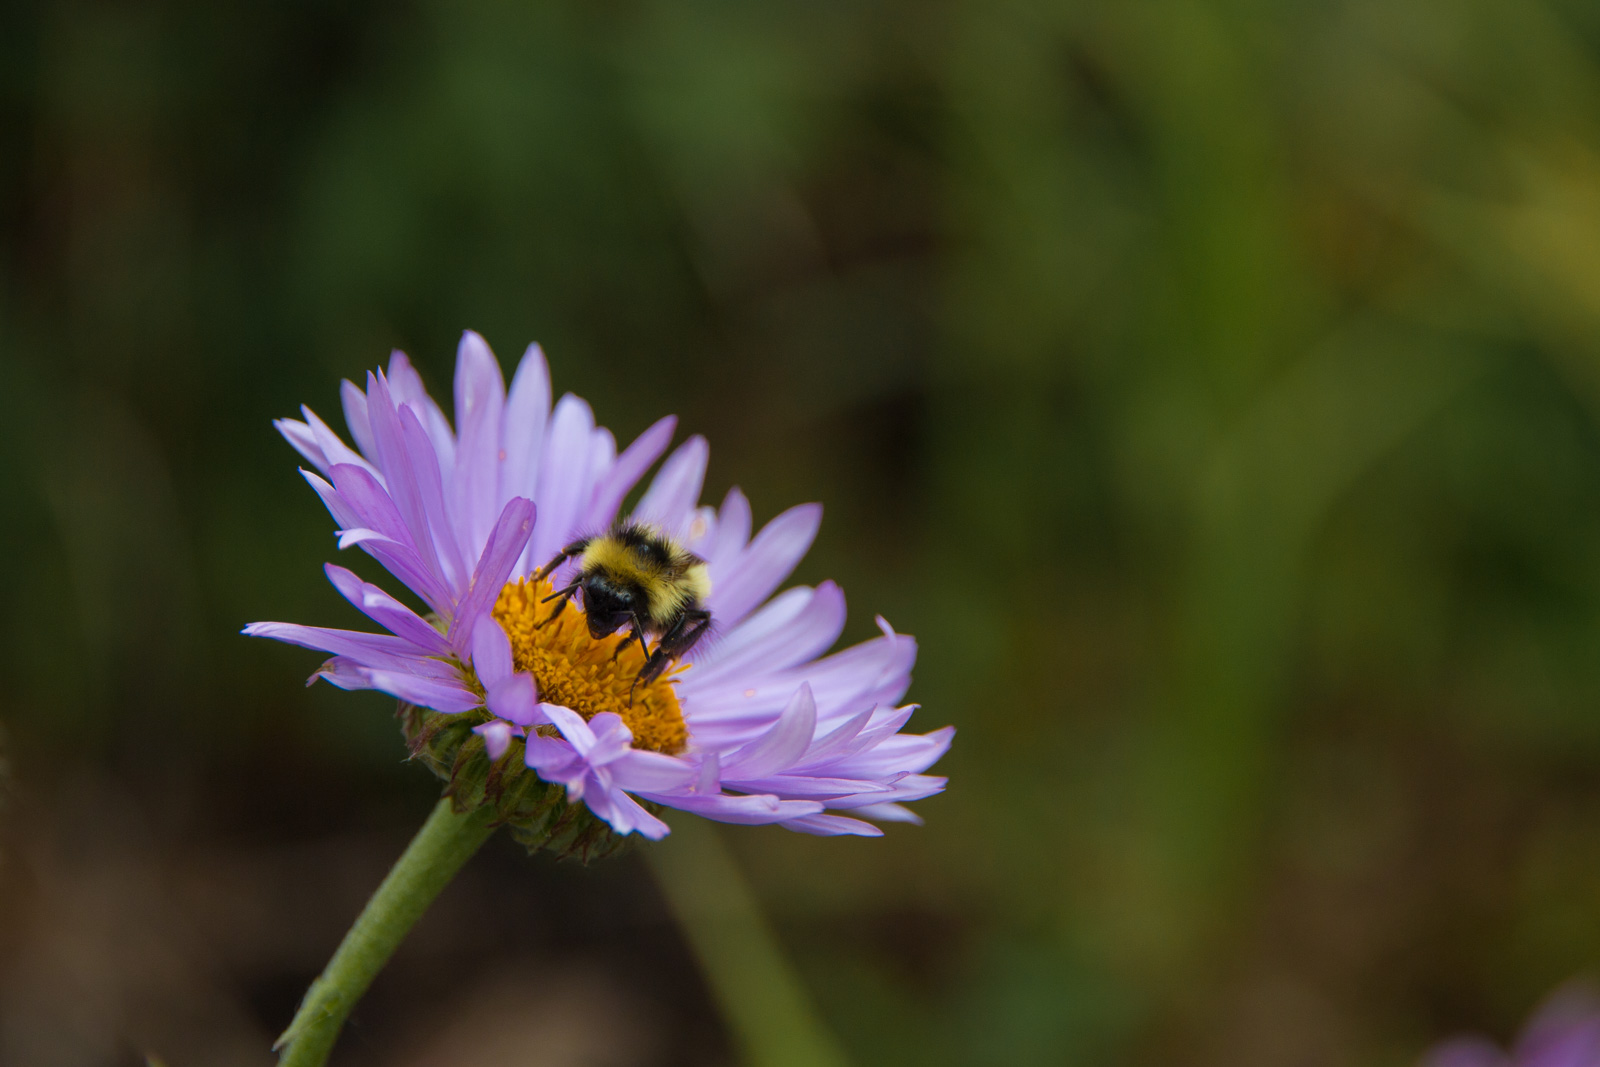 Colorado Tansy Aster Flower with a Bee